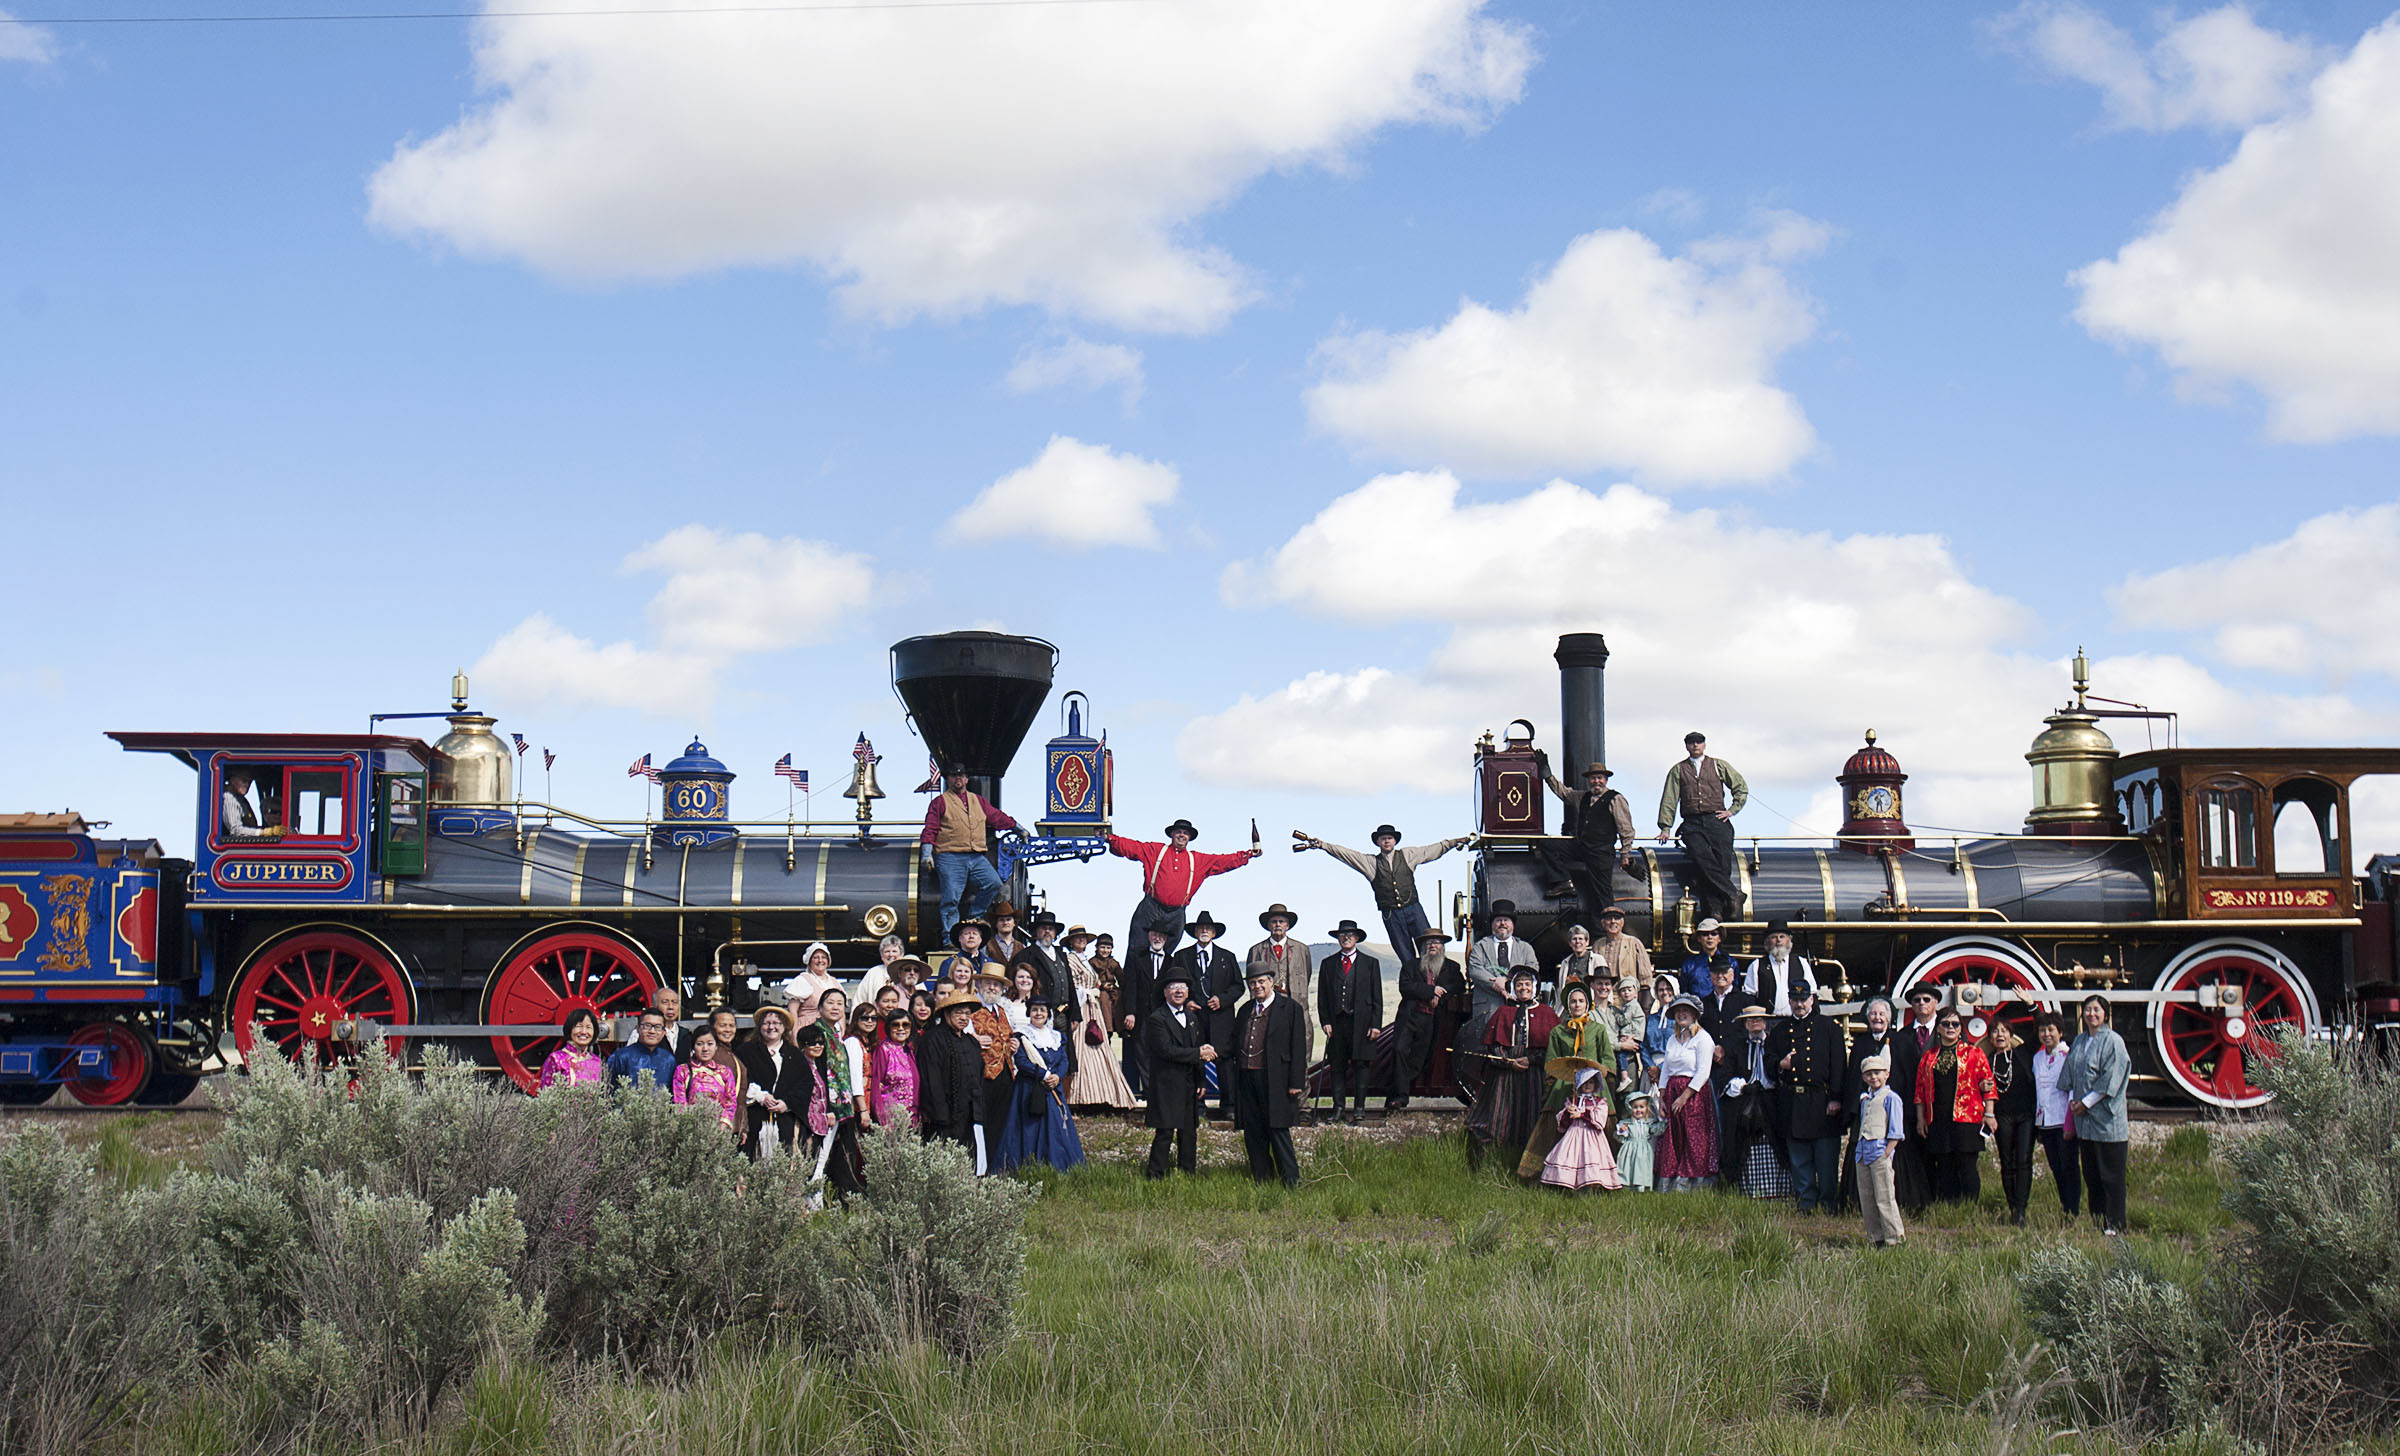 People in costumes pose for the reenactment photo at the golden spike commemorative ceremony in Brigham City, Tuesday, May 10, 2016.